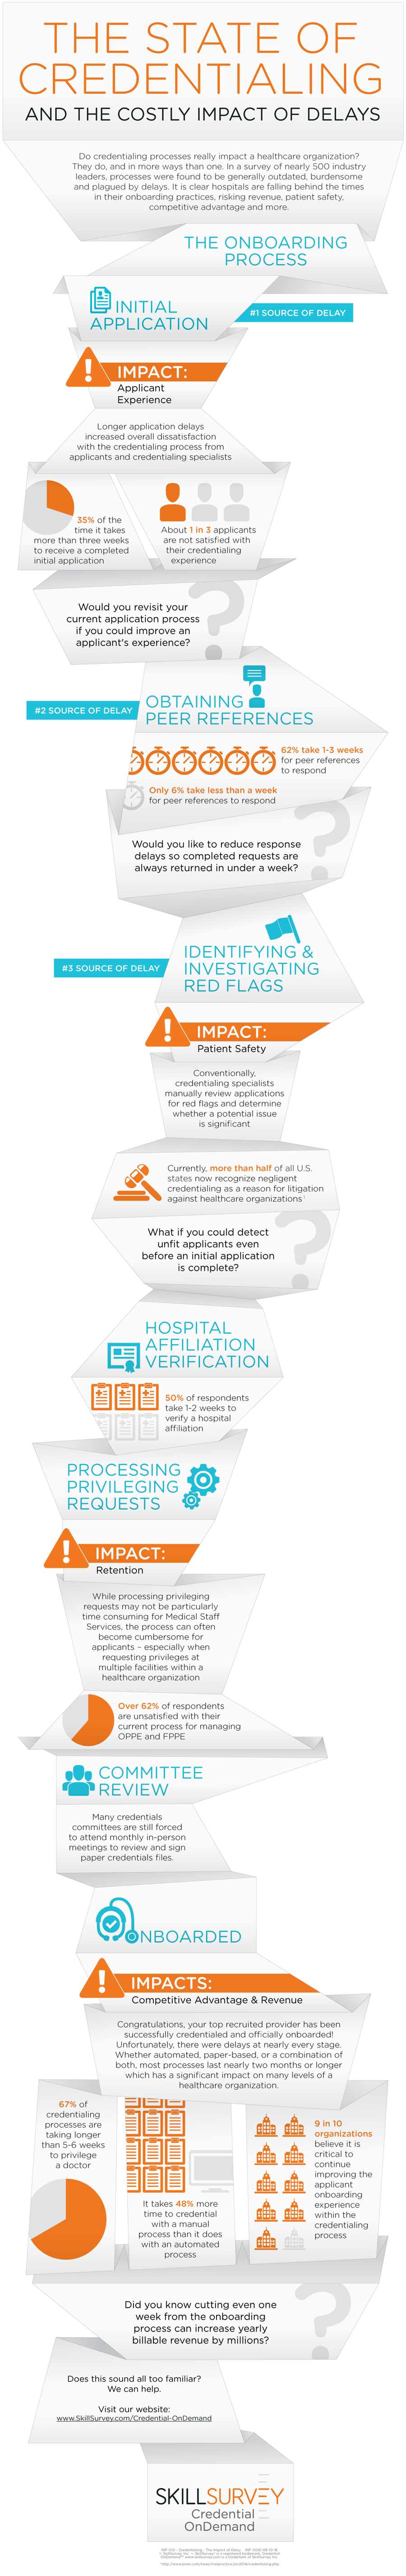 Credentialing: The Impact of Delay Infographic